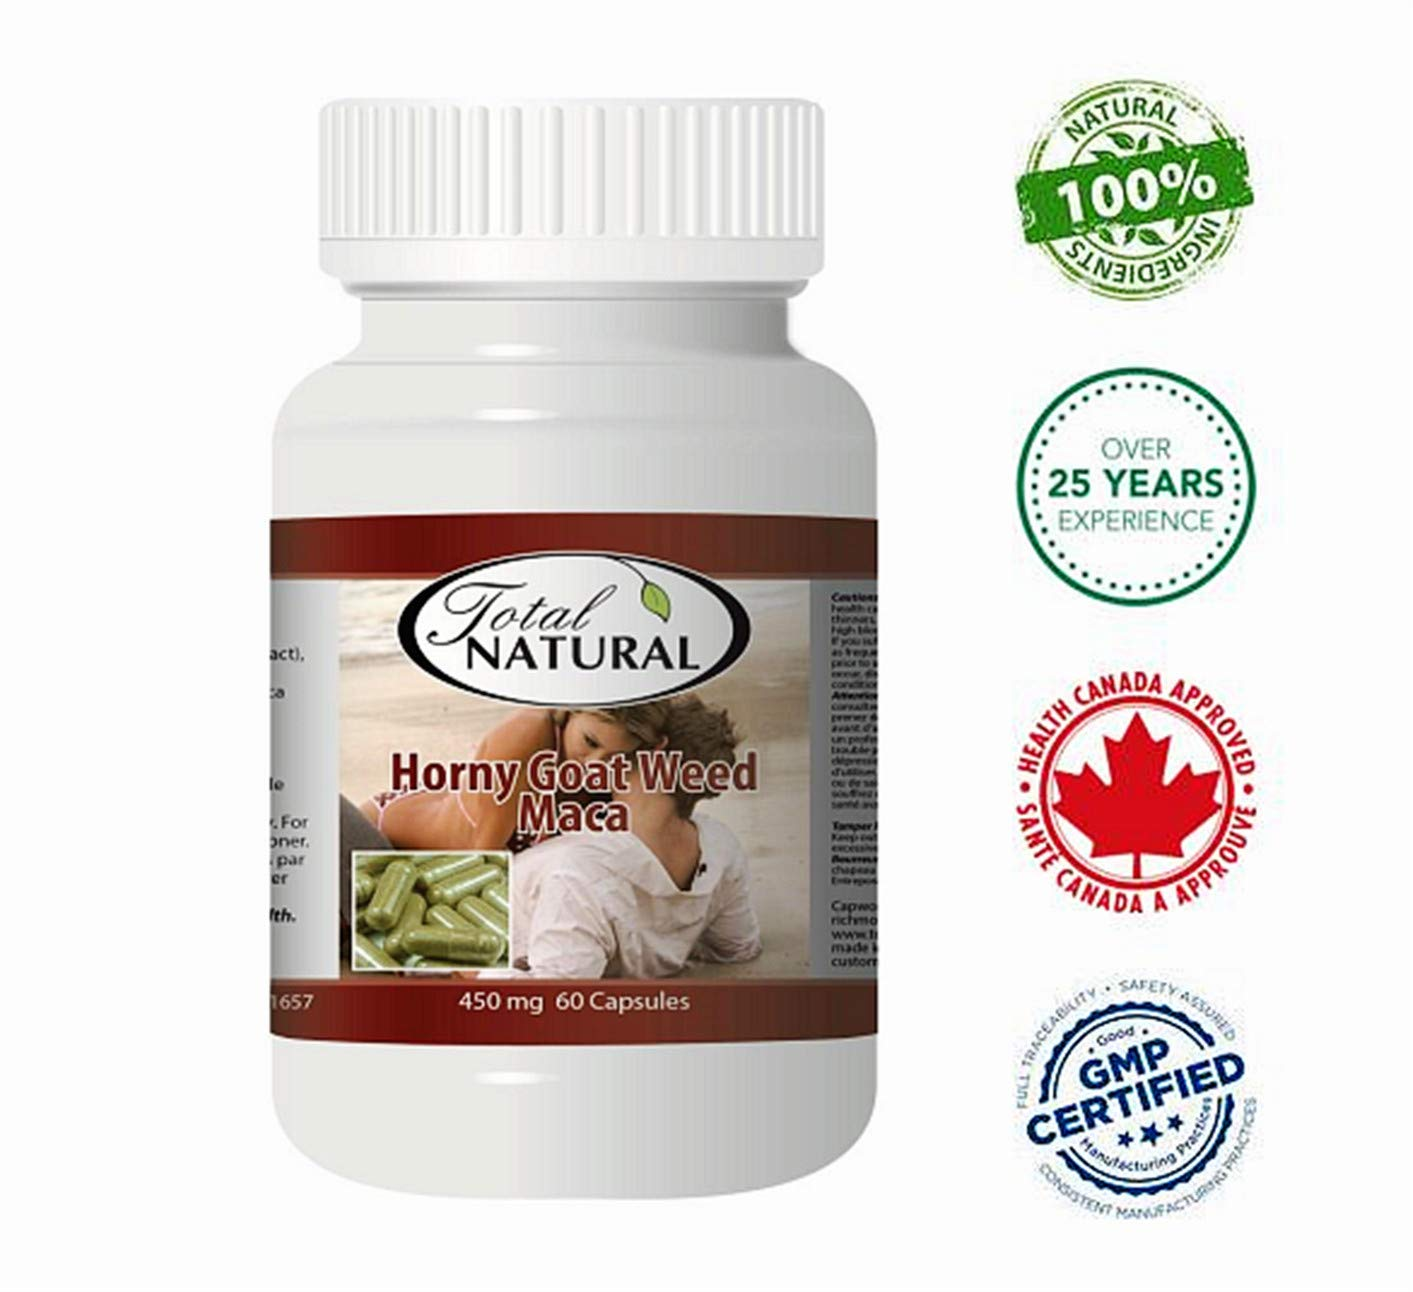 Horny Goat Weed with Maca 450mg 60 Capsules [12 Bottles] by Total Natural, Promote Sexual Health, Improve Stamina, Improving Immune Health, Made in Canada